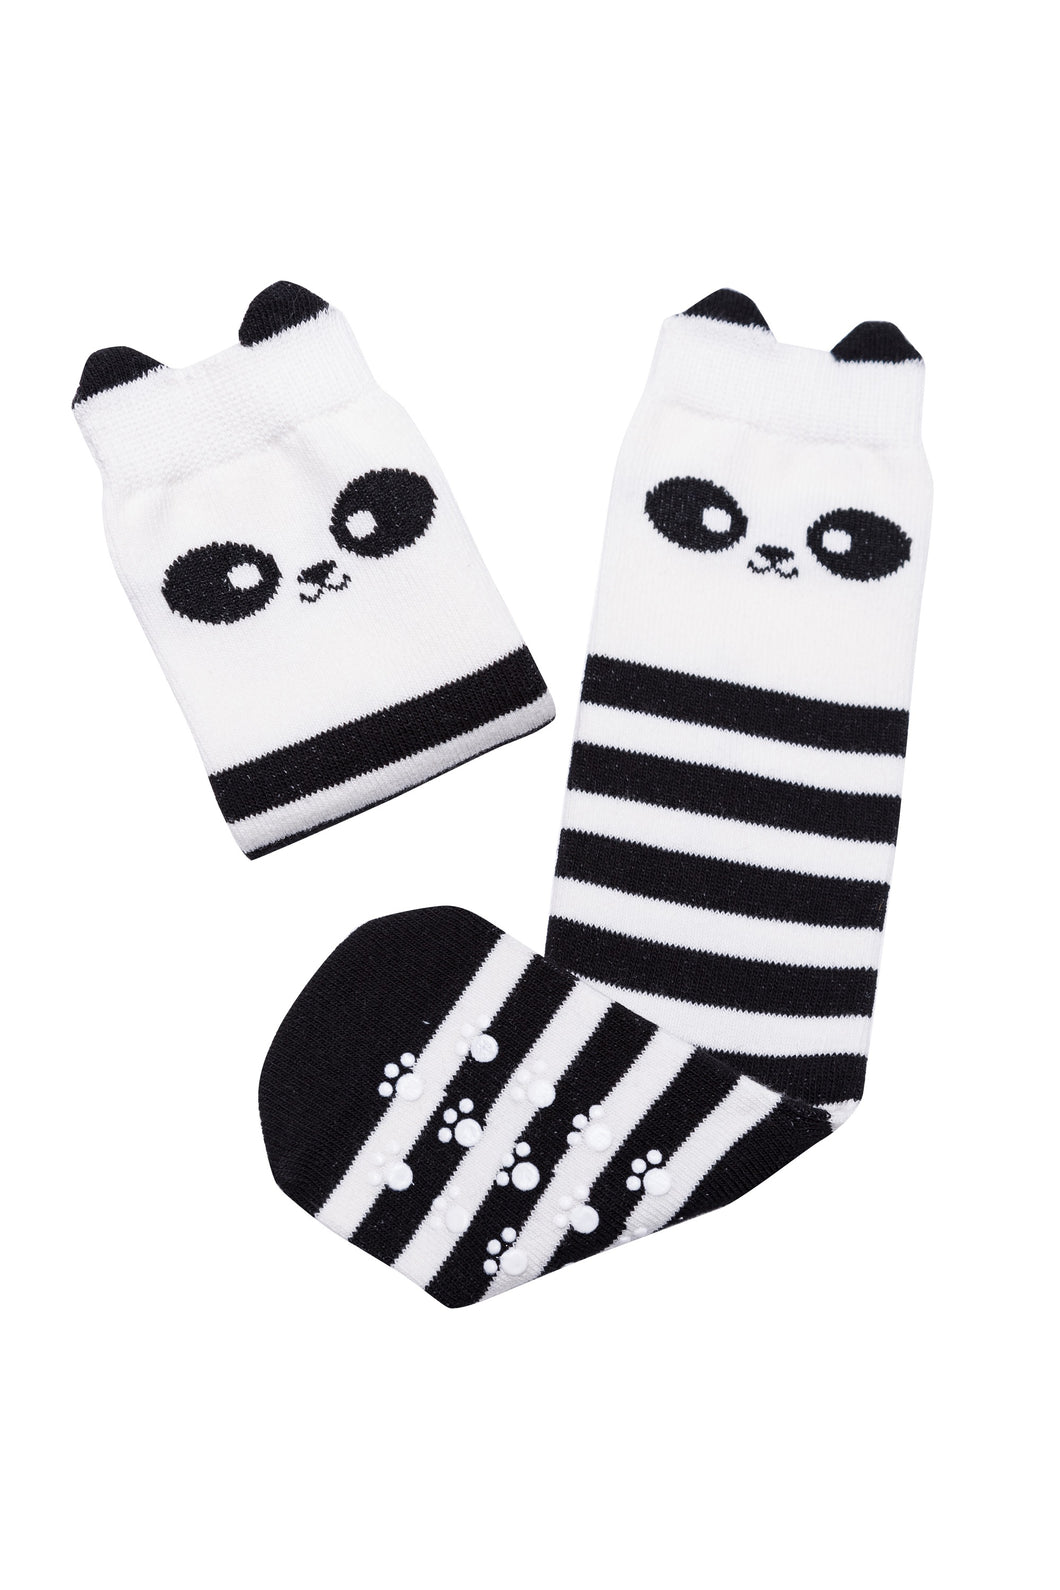 Mama's Feet Wanda the Brave Panda - Knee high socks (black/white)